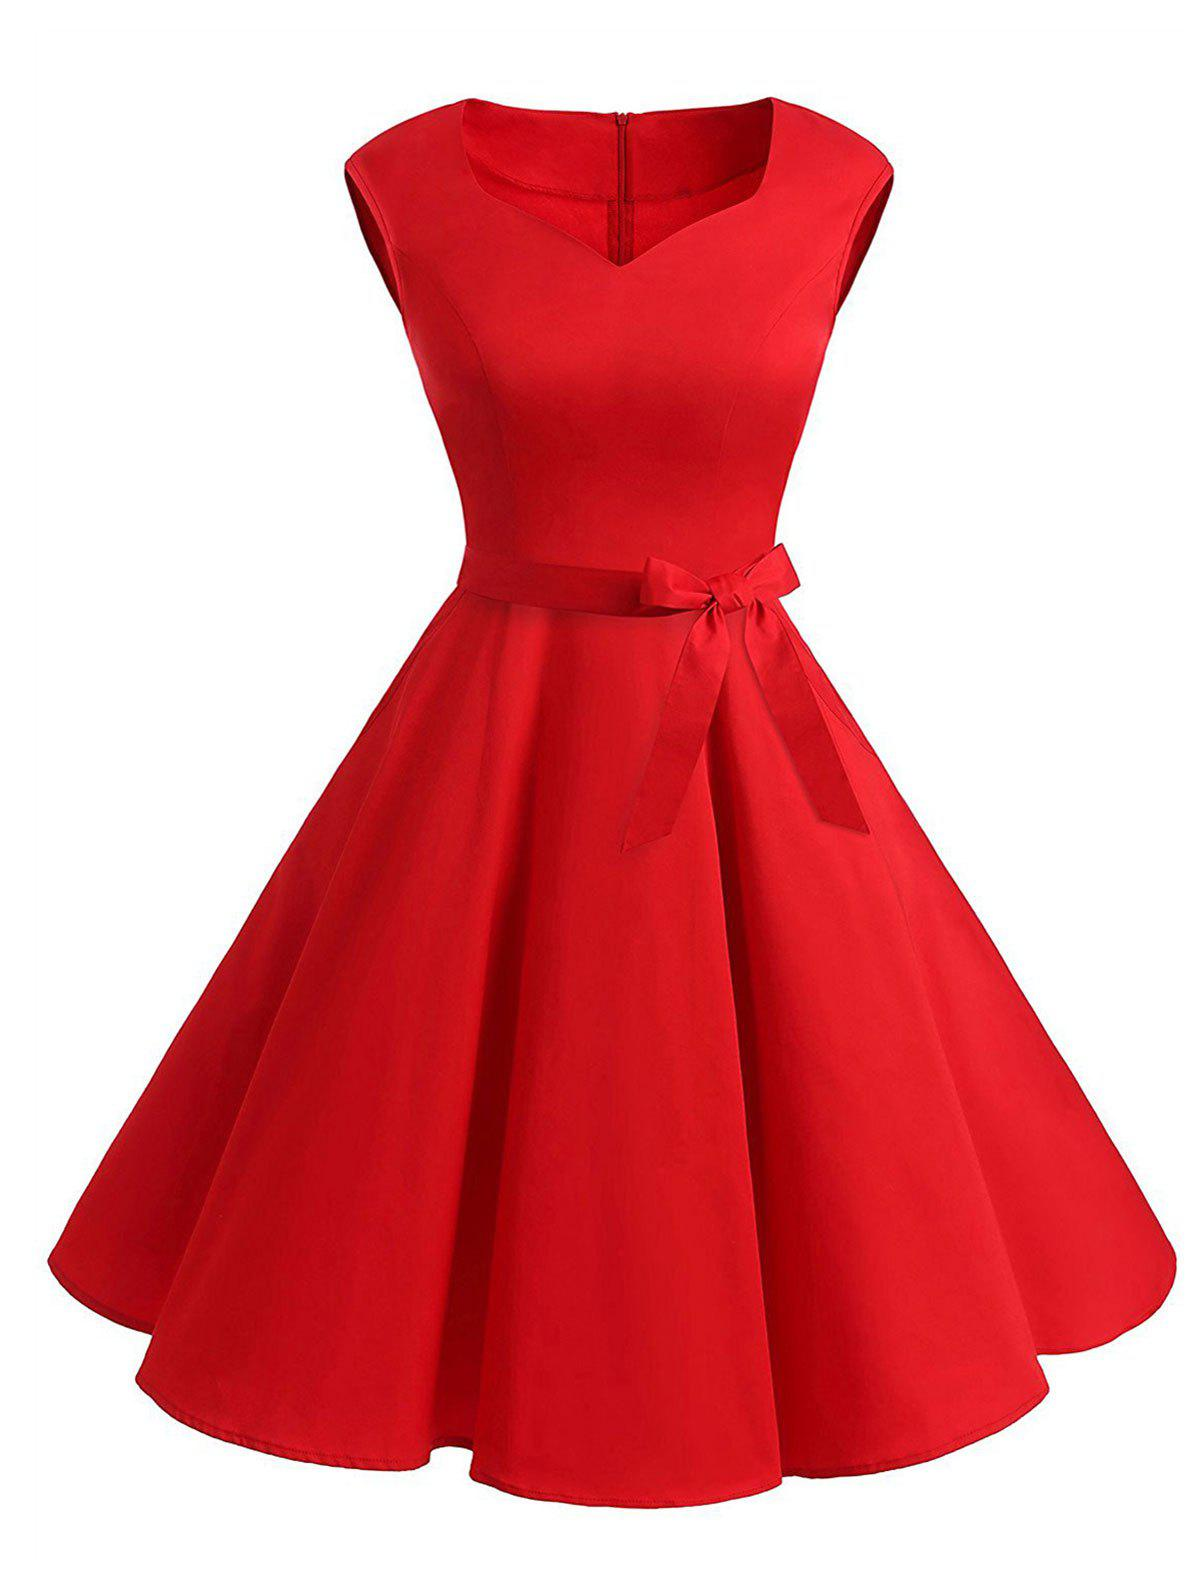 Belted Sweetheart Sleeveless Dress - RED 2XL